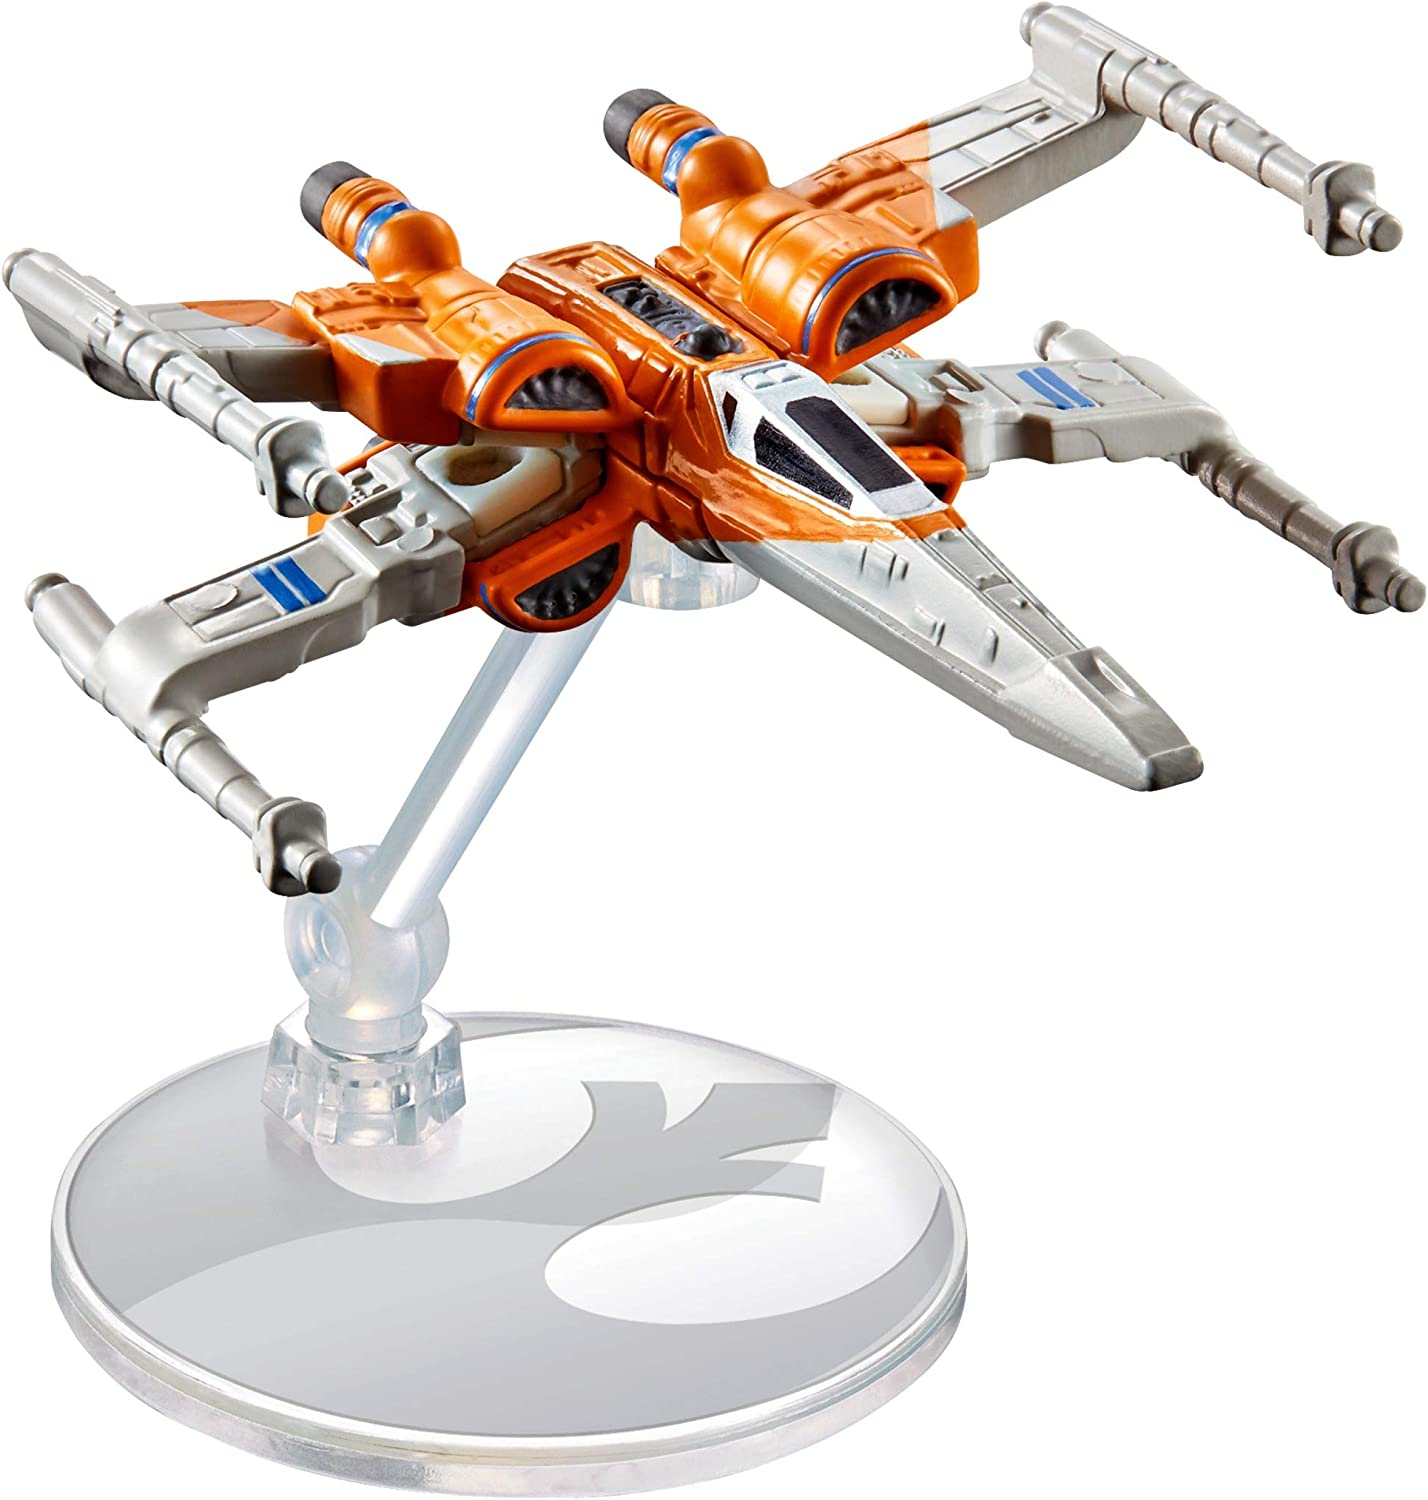 Amazon Com Hot Wheels Star Wars X Wing Fighter Starship Toys Games